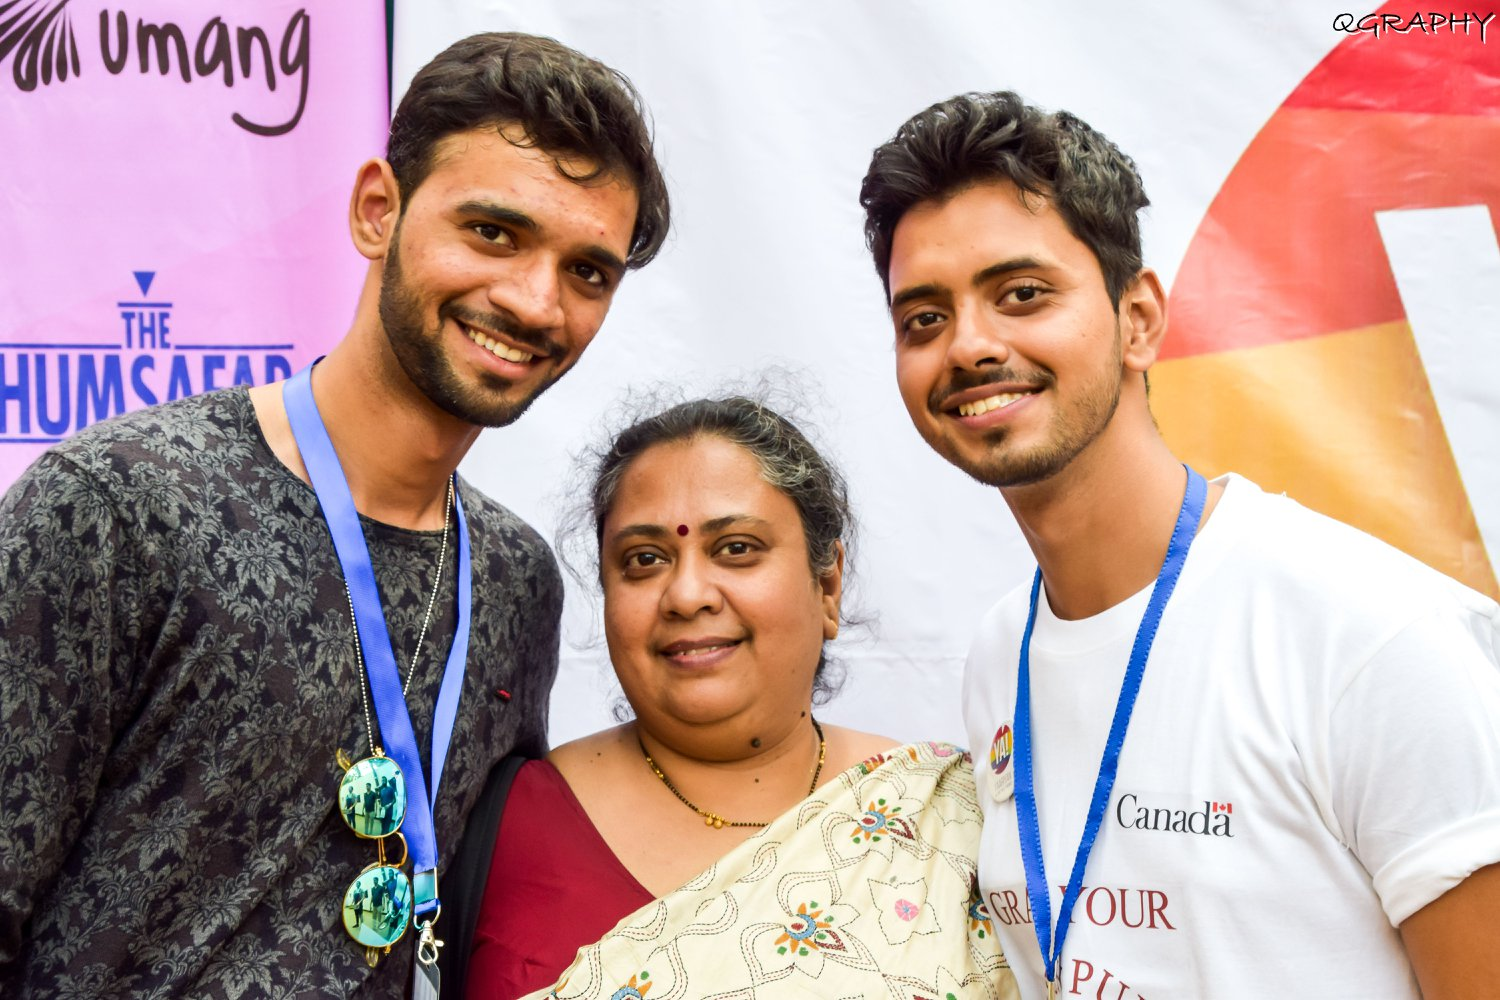 Ankit Andurlekar and his story of acceptance